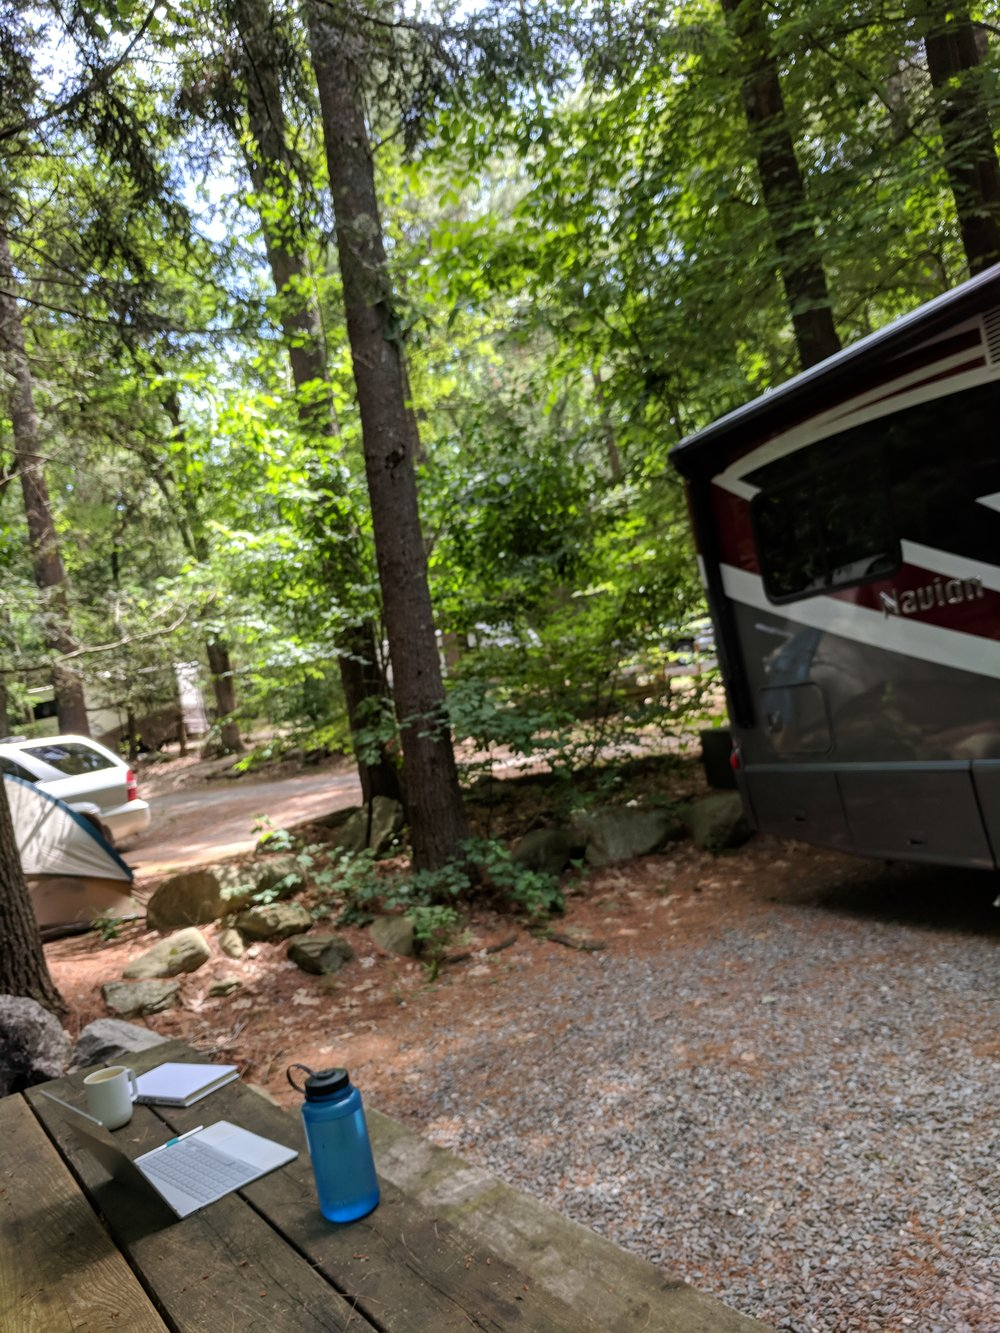 Outdoor office at a campground outside of Boston